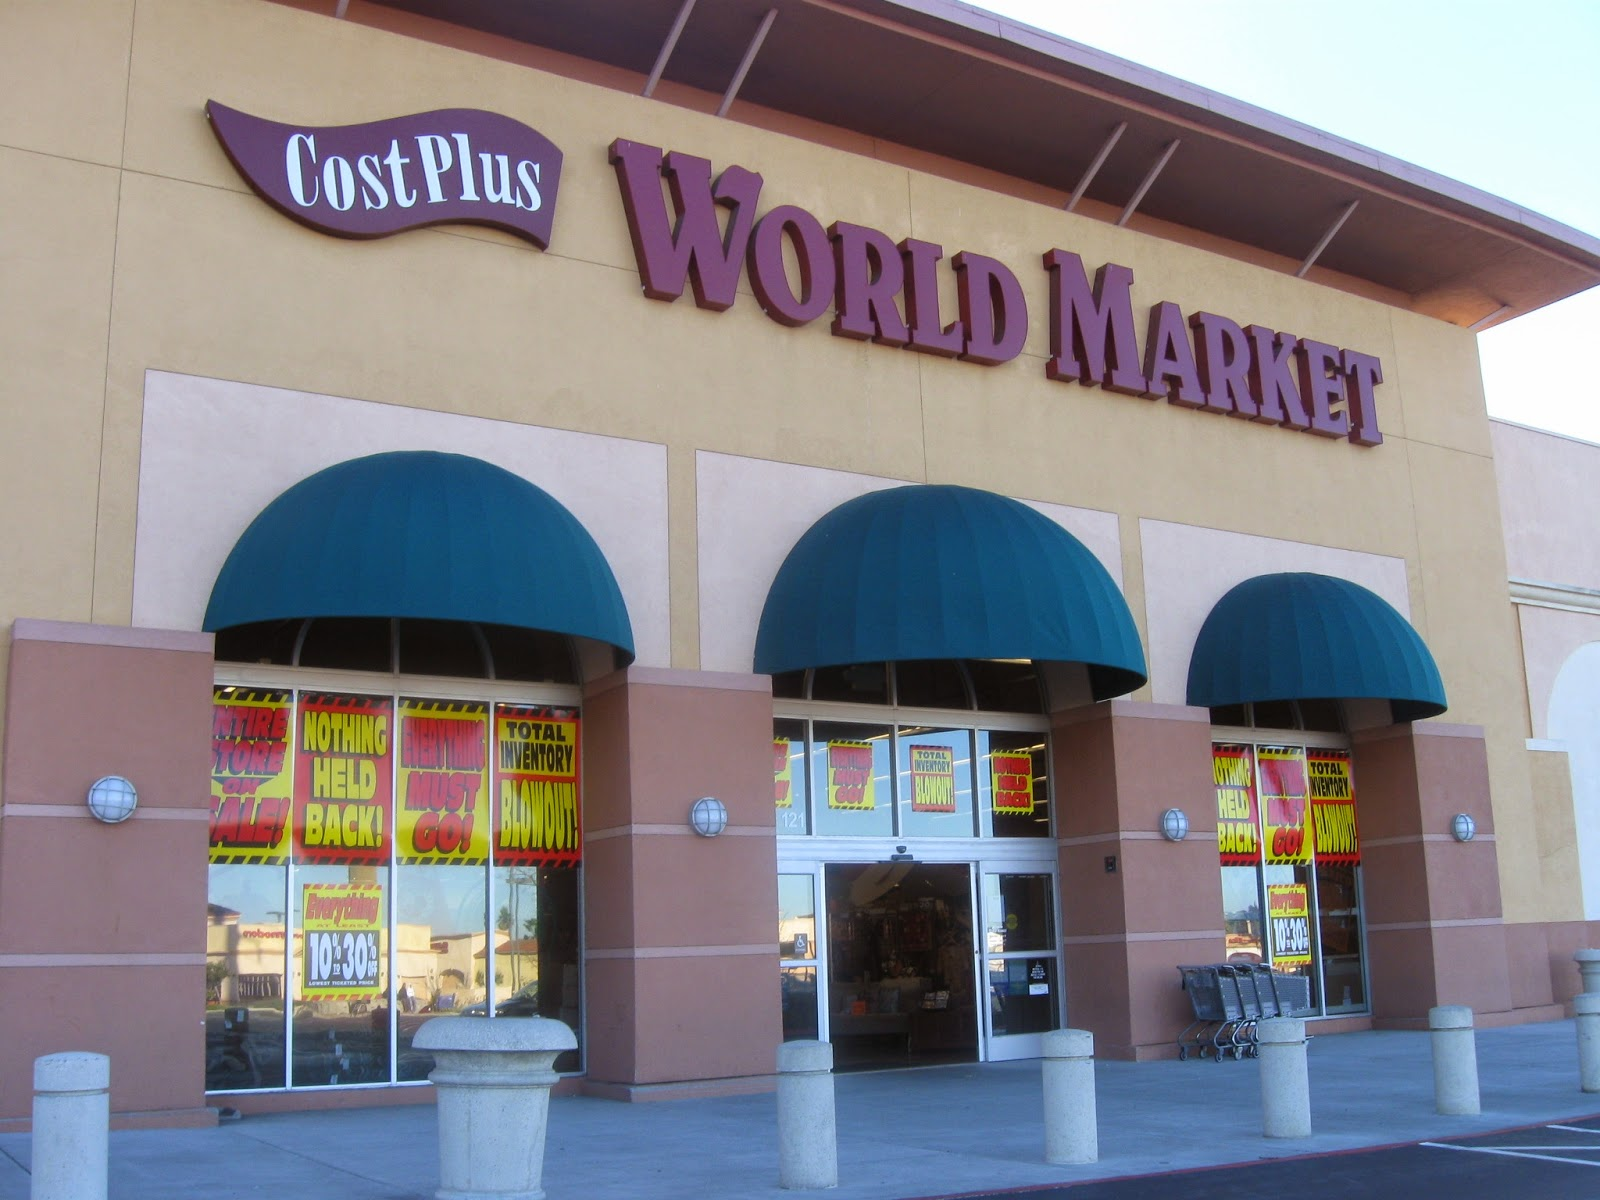 world market coupons. World Market Coupons   Printable Coupons In Store  amp  Coupon Codes